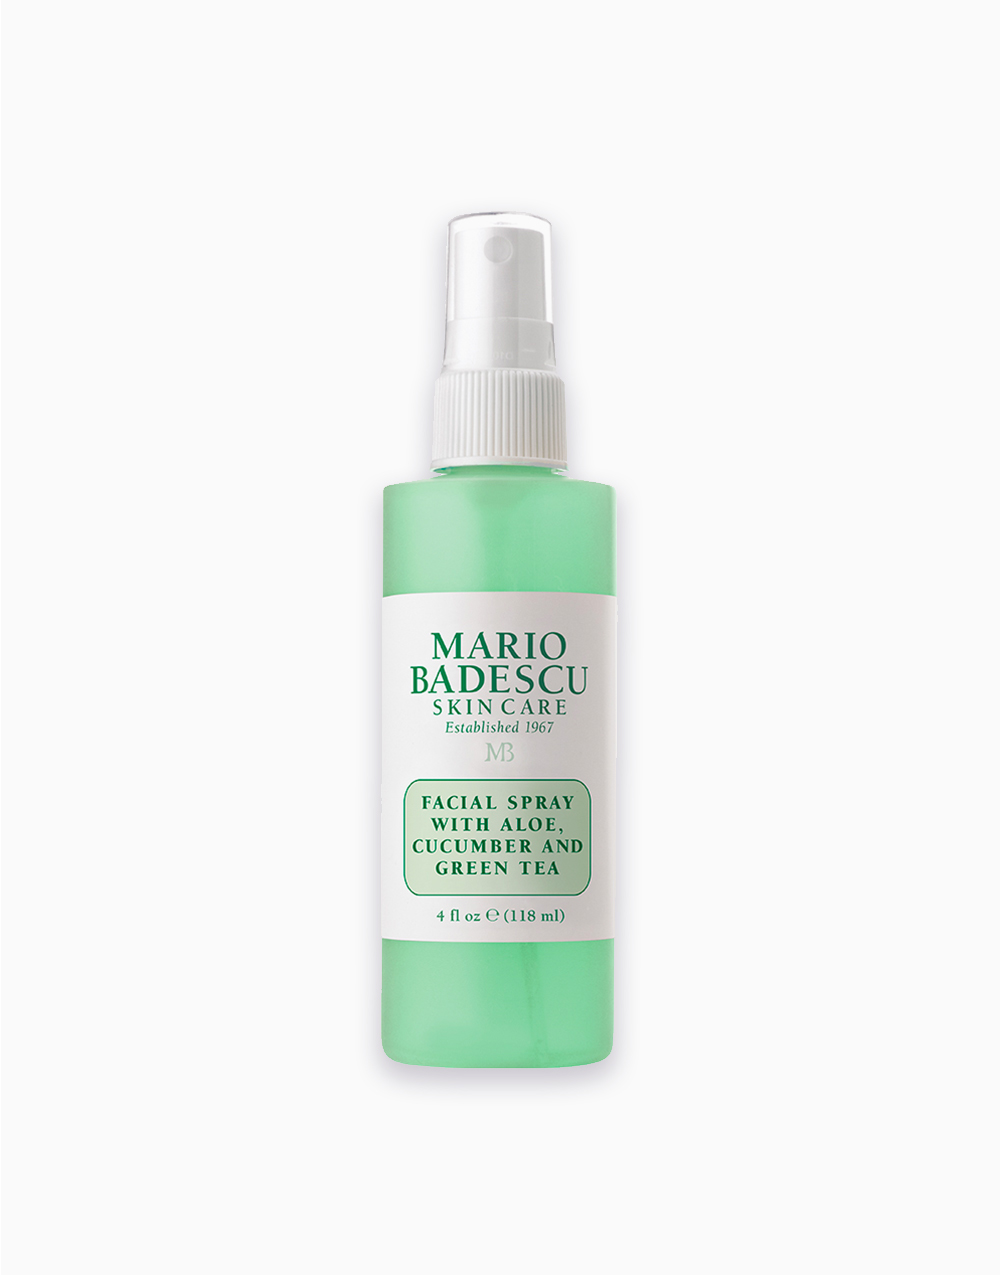 Facial Spray With Aloe, Cucumber, and Green Tea (4oz) by Mario Badescu